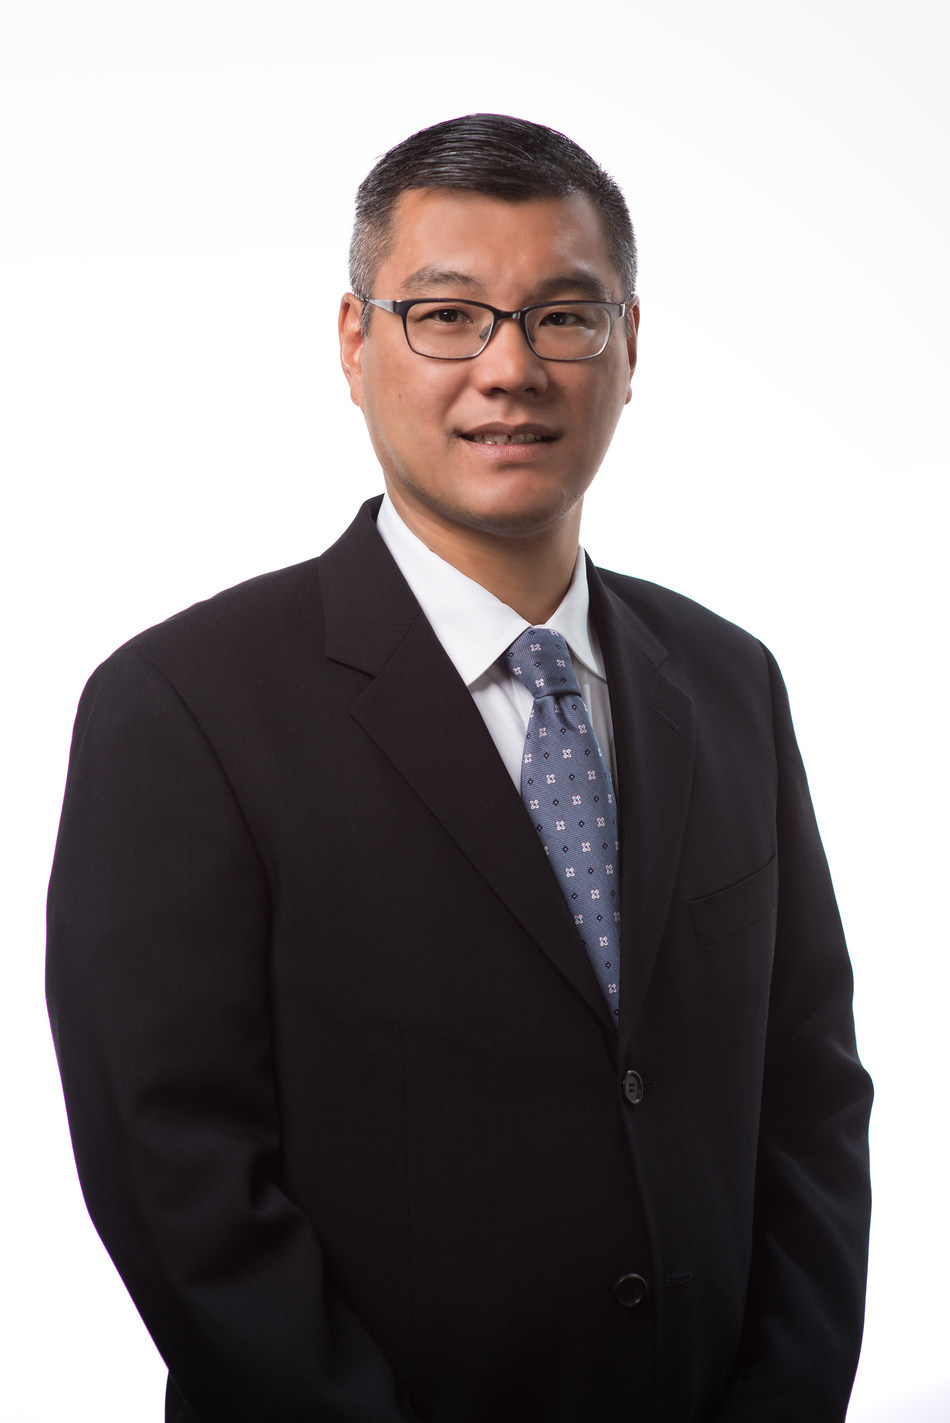 As Sikich LLP's chief financial officer, John Yim oversees the firm's financial strategy and processes as well as its internal information technology operations.